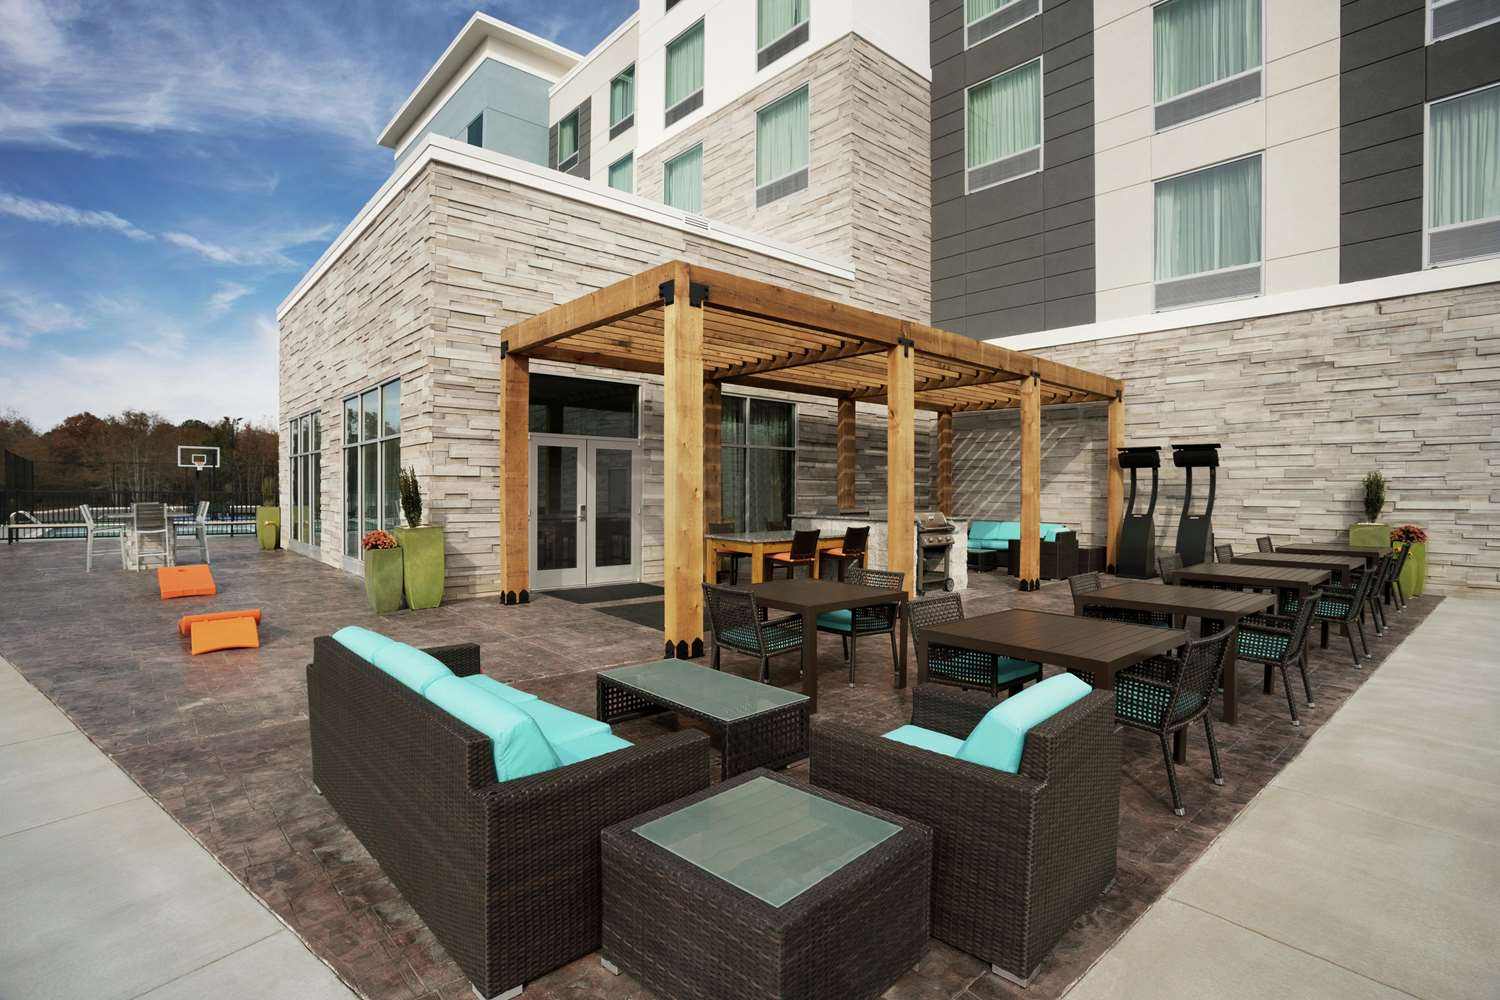 Recreation - Homewood Suites by Hilton Civic Center Florence